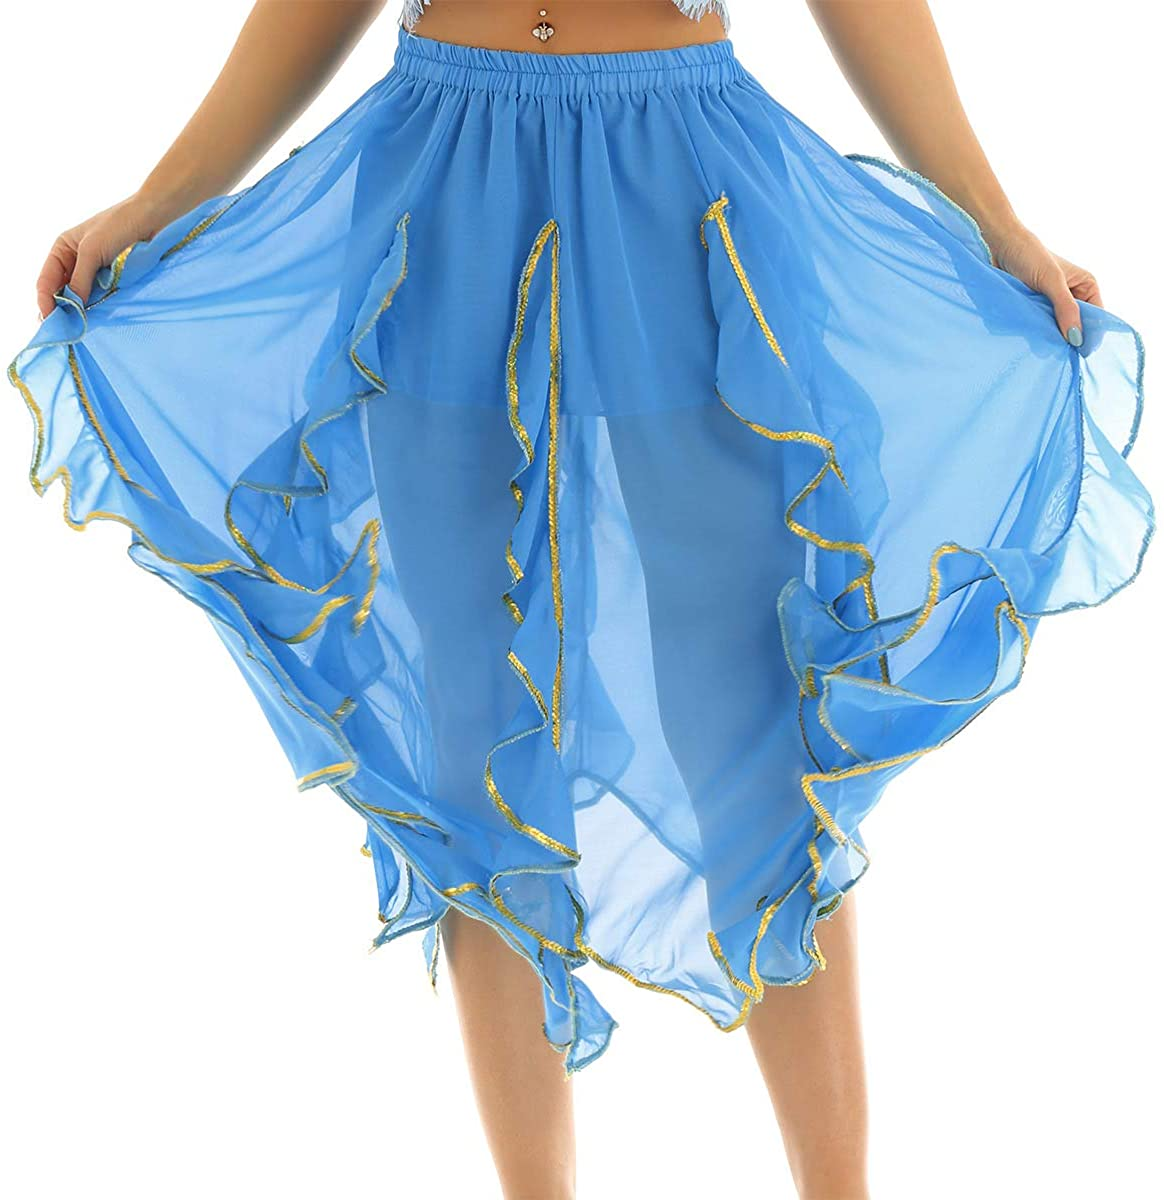 iEFiEL Women Chiffon Fairy Fancy Skirt Belly Dance Skirt with Gold Sequin Side Split Performance Costume Dance Skirt